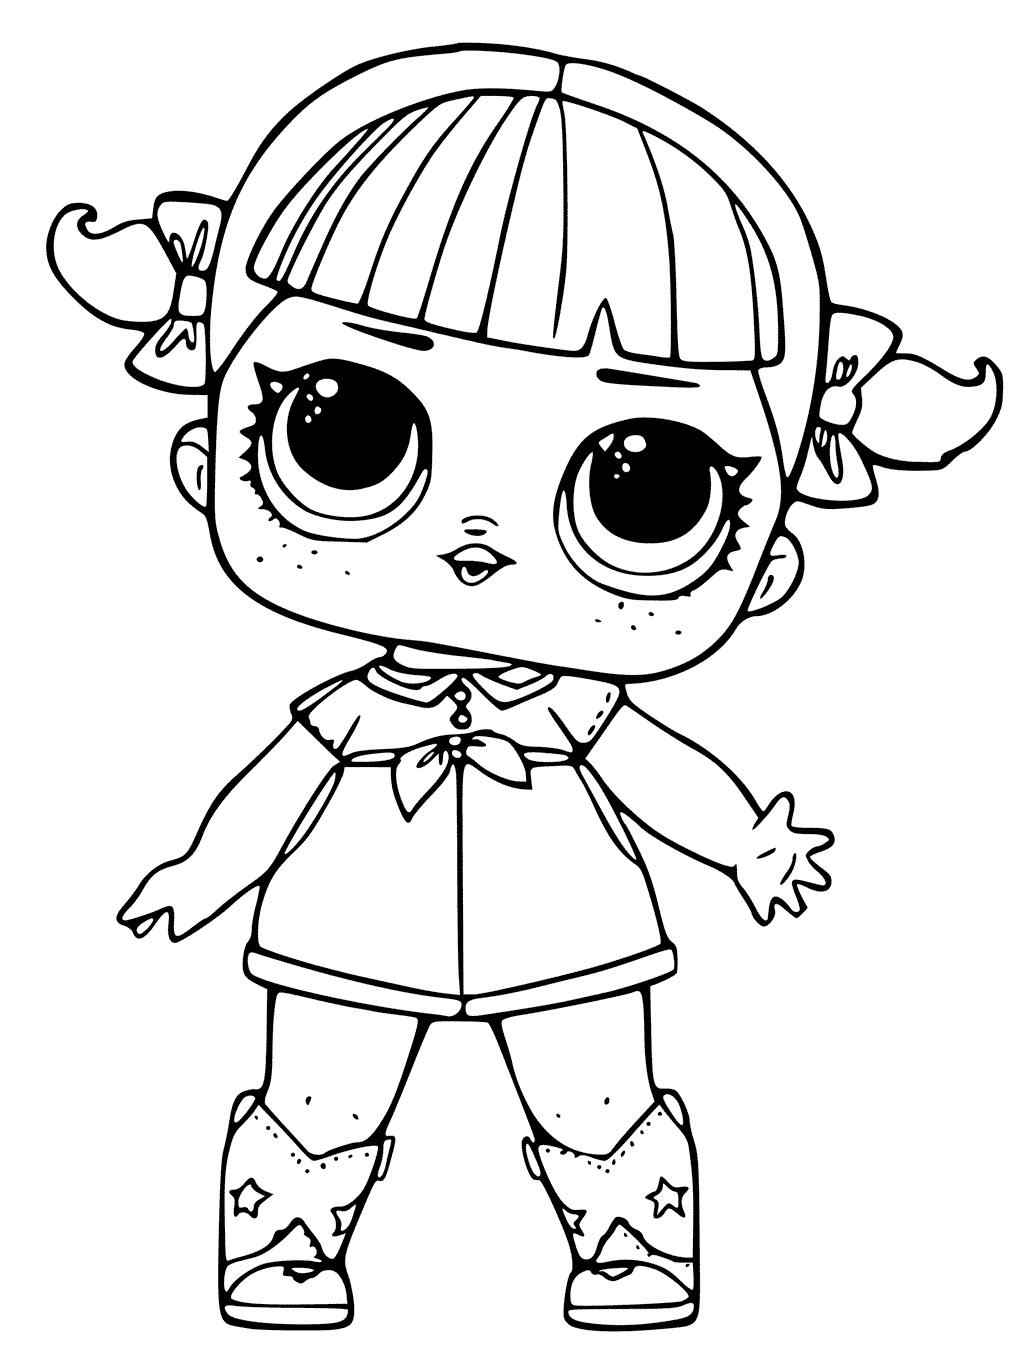 Coloring Pages of LOL Surprise